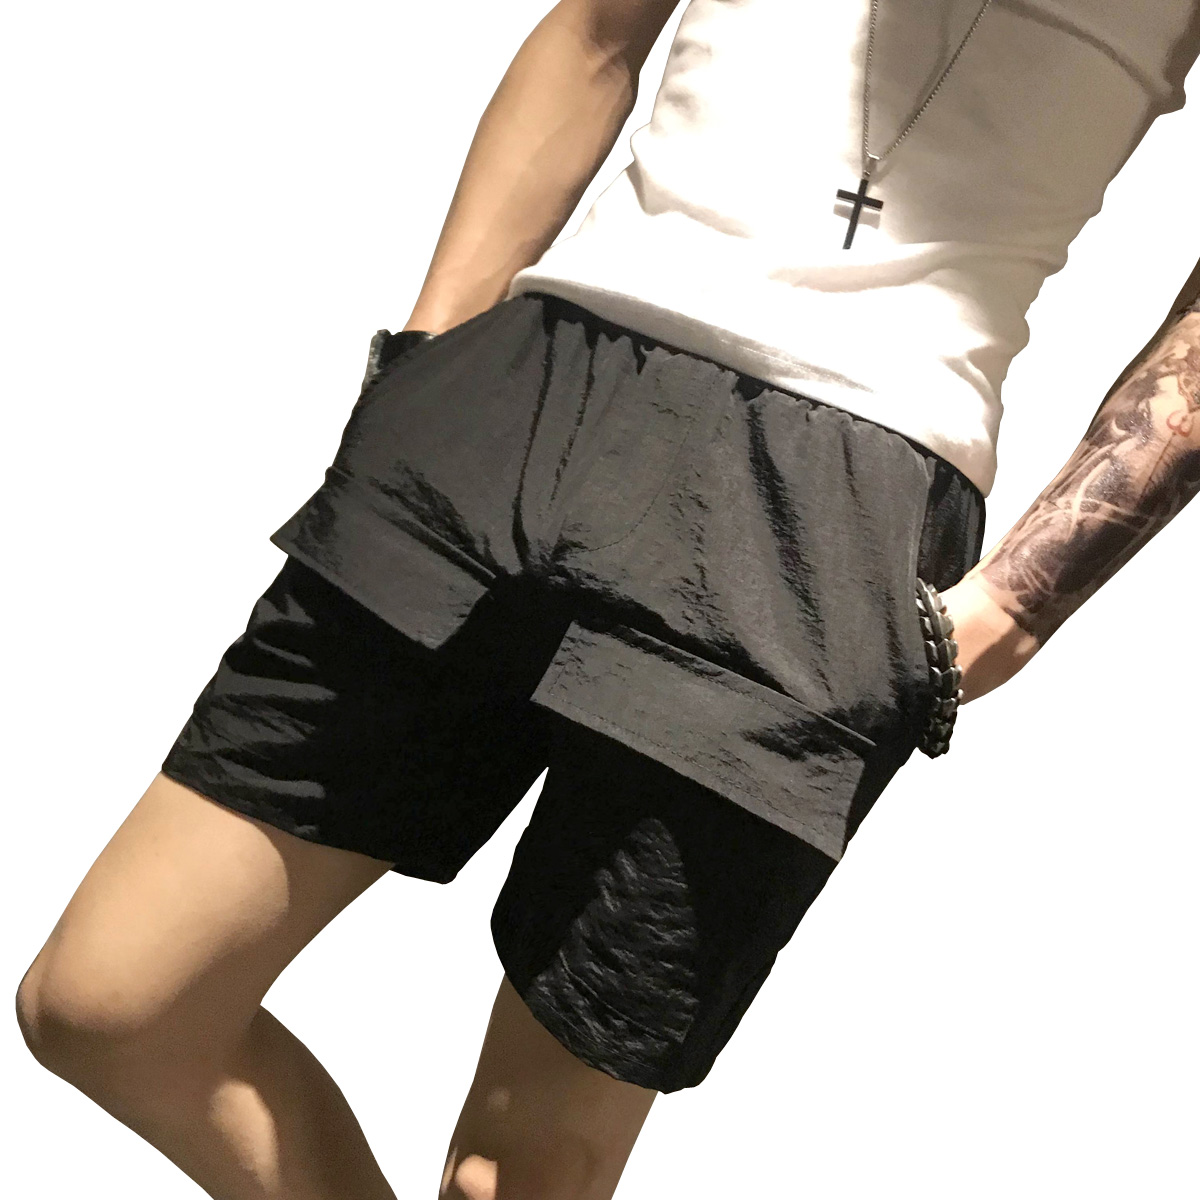 Elastic Men Shorts Summer Casual Mid Waist Beach Cargo Shorts Work With Pockets Fashion Thin Kleding Overwatch Pants XX60MS